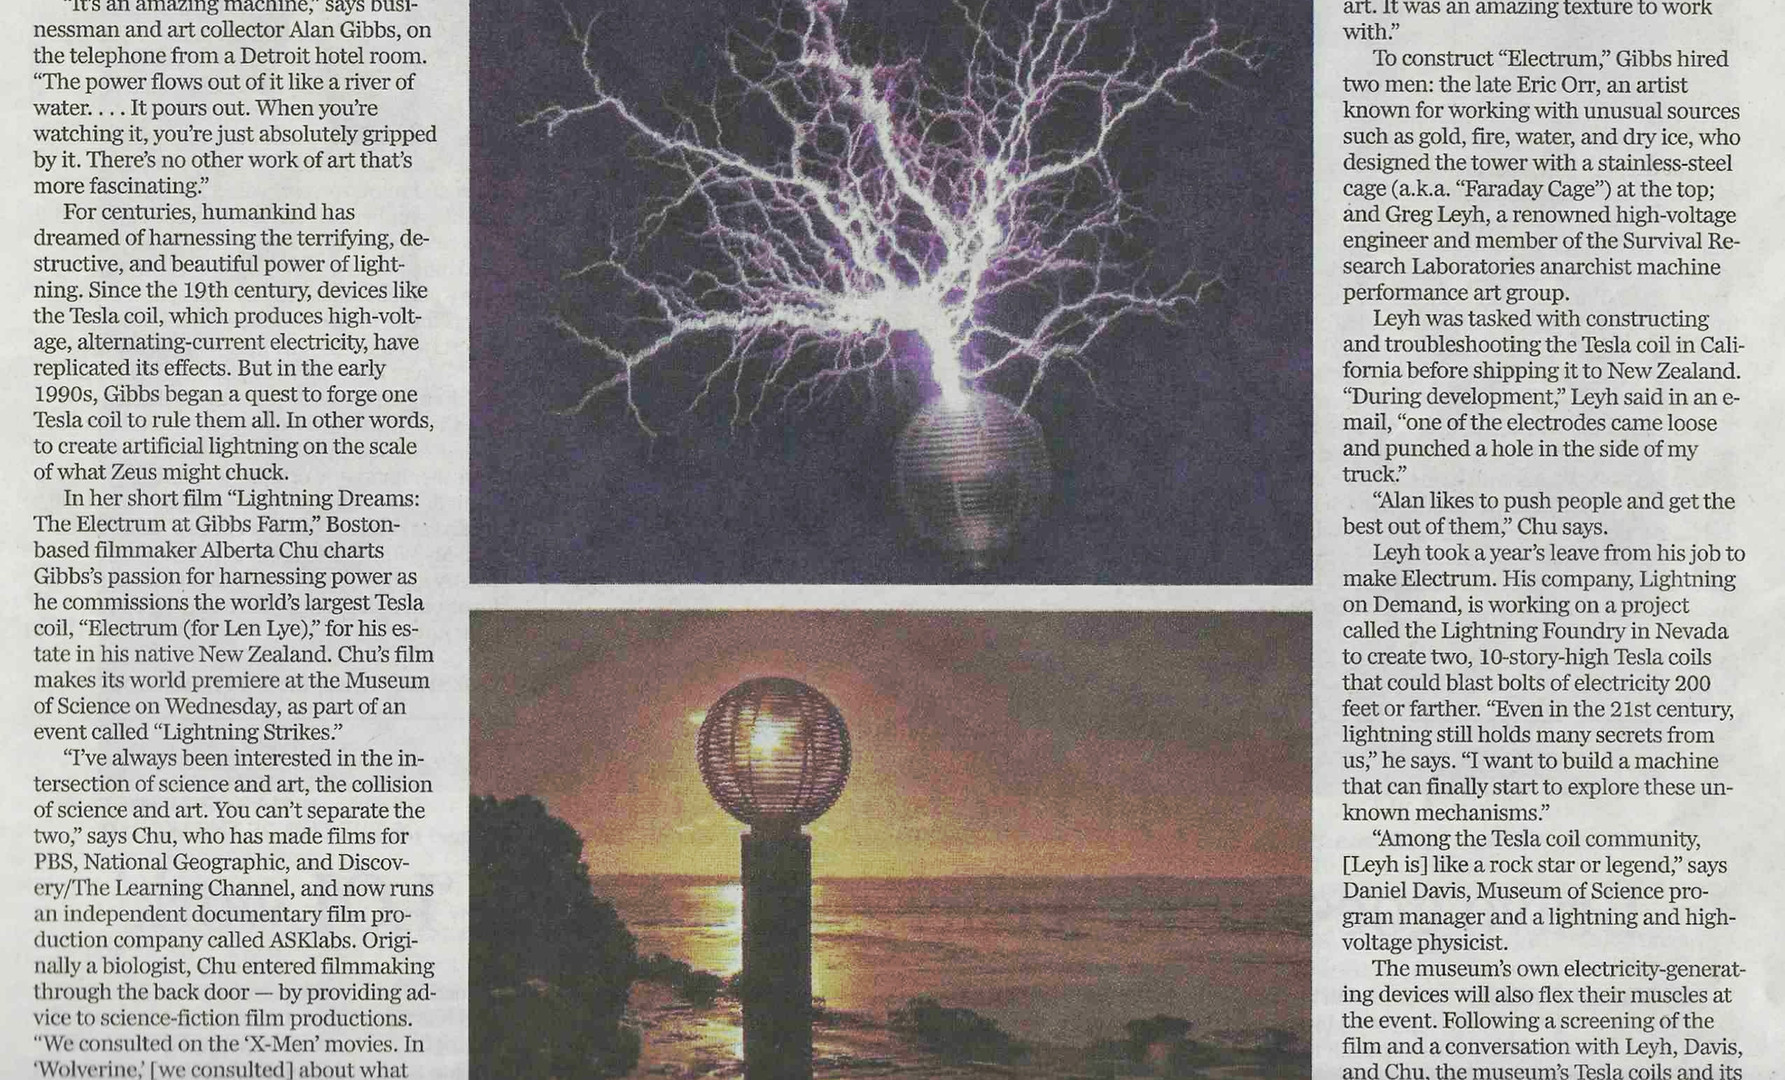 """""""Art and Science Collide in 'Lightning D"""